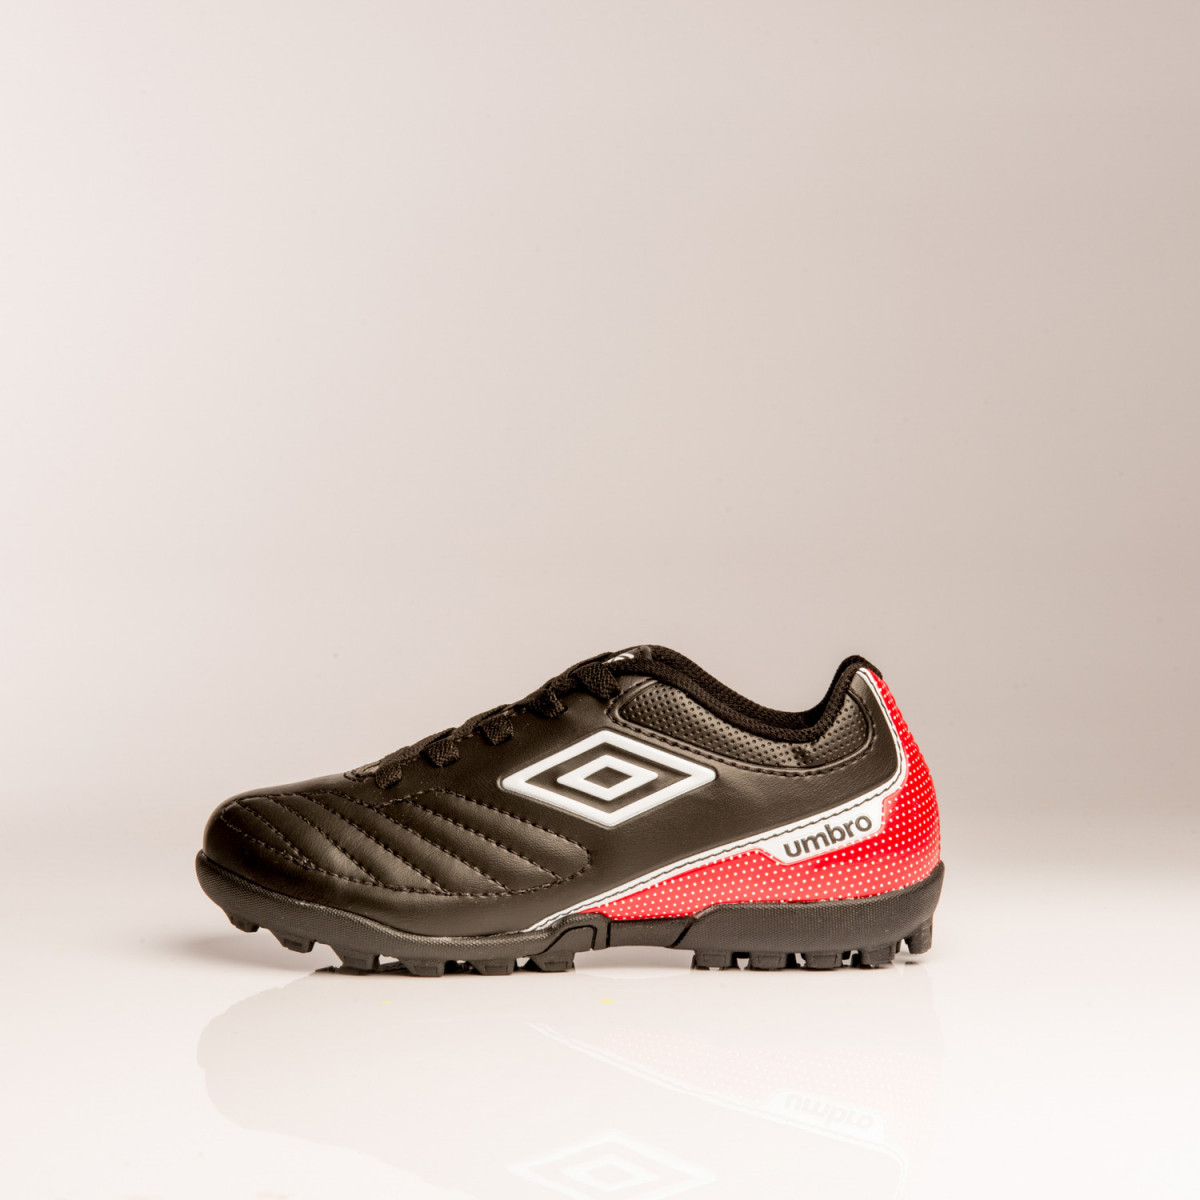 BOTINES UMBRO CHUTEIRA SOCIETY ATTAK 2013 JR